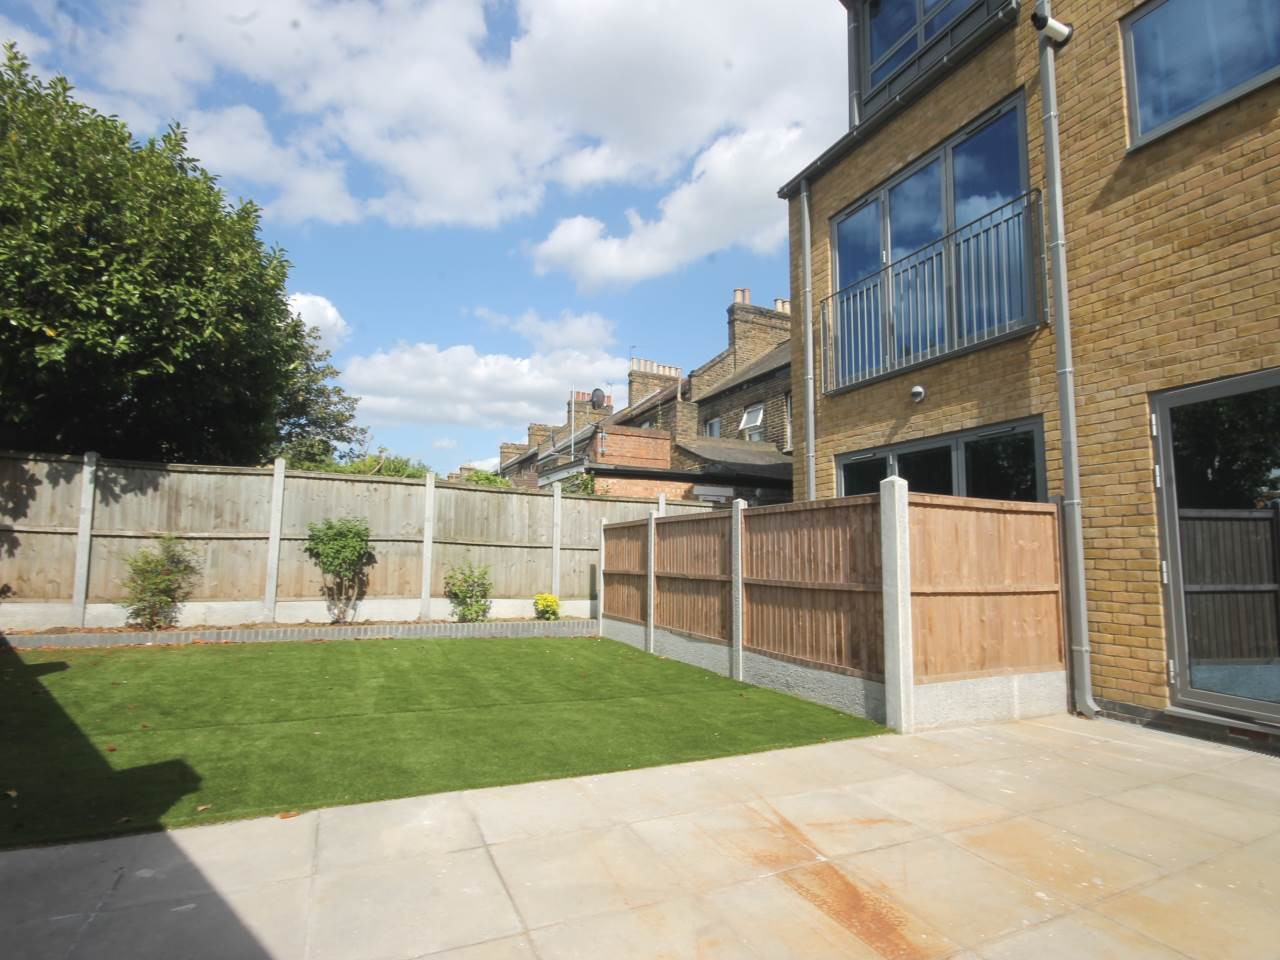 2 bed flat to rent in Queens Road, E17